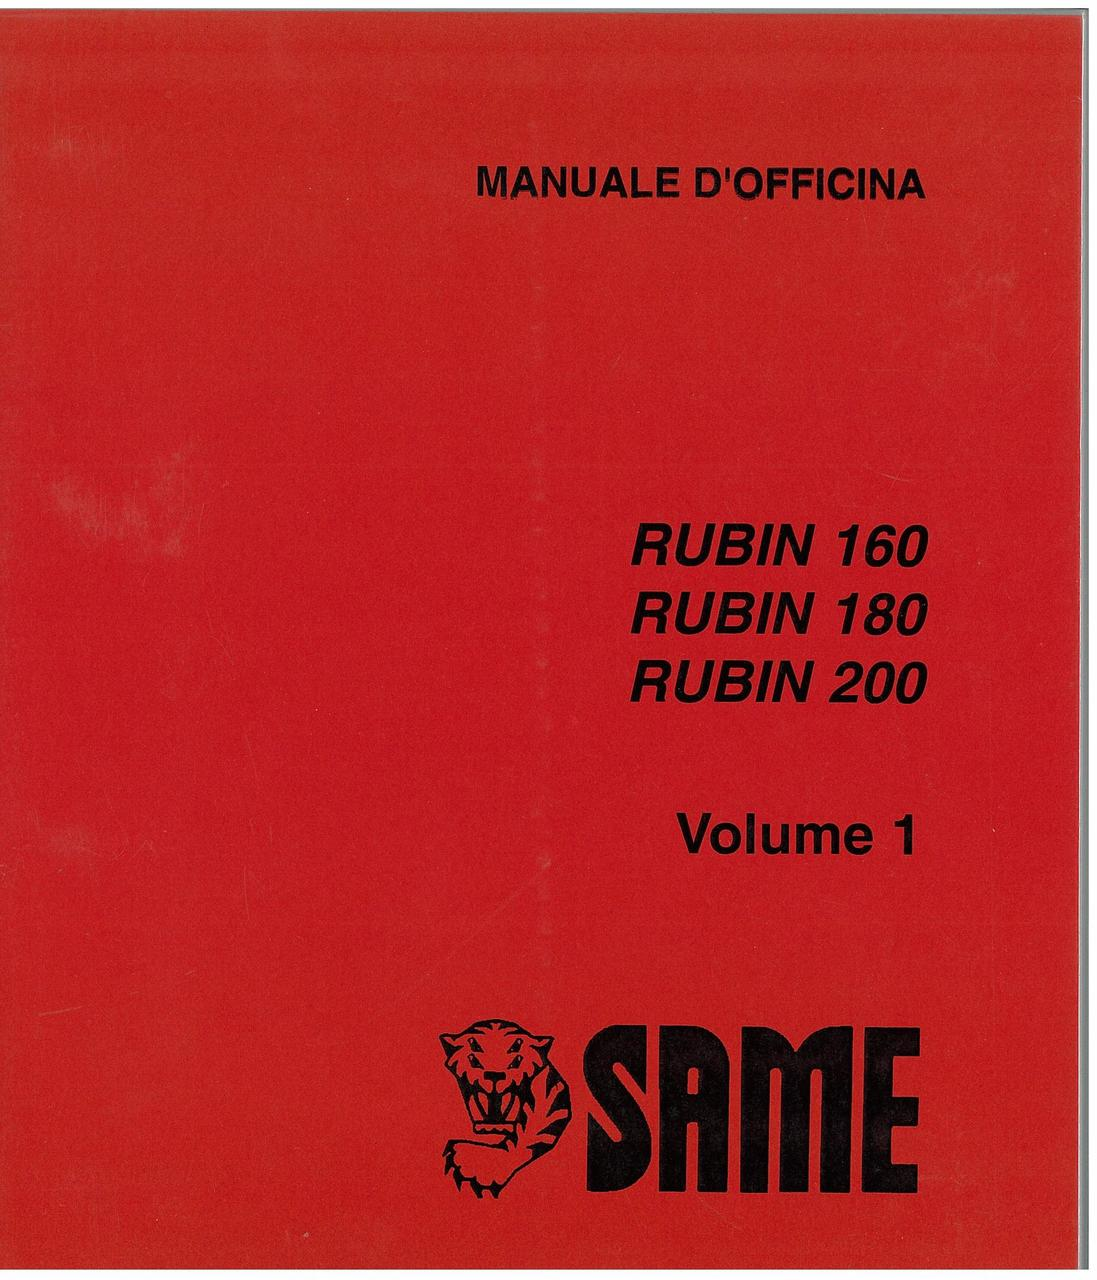 RUBIN 160 - 180 - 200 - VOLUME 1 - Manuale d'officina